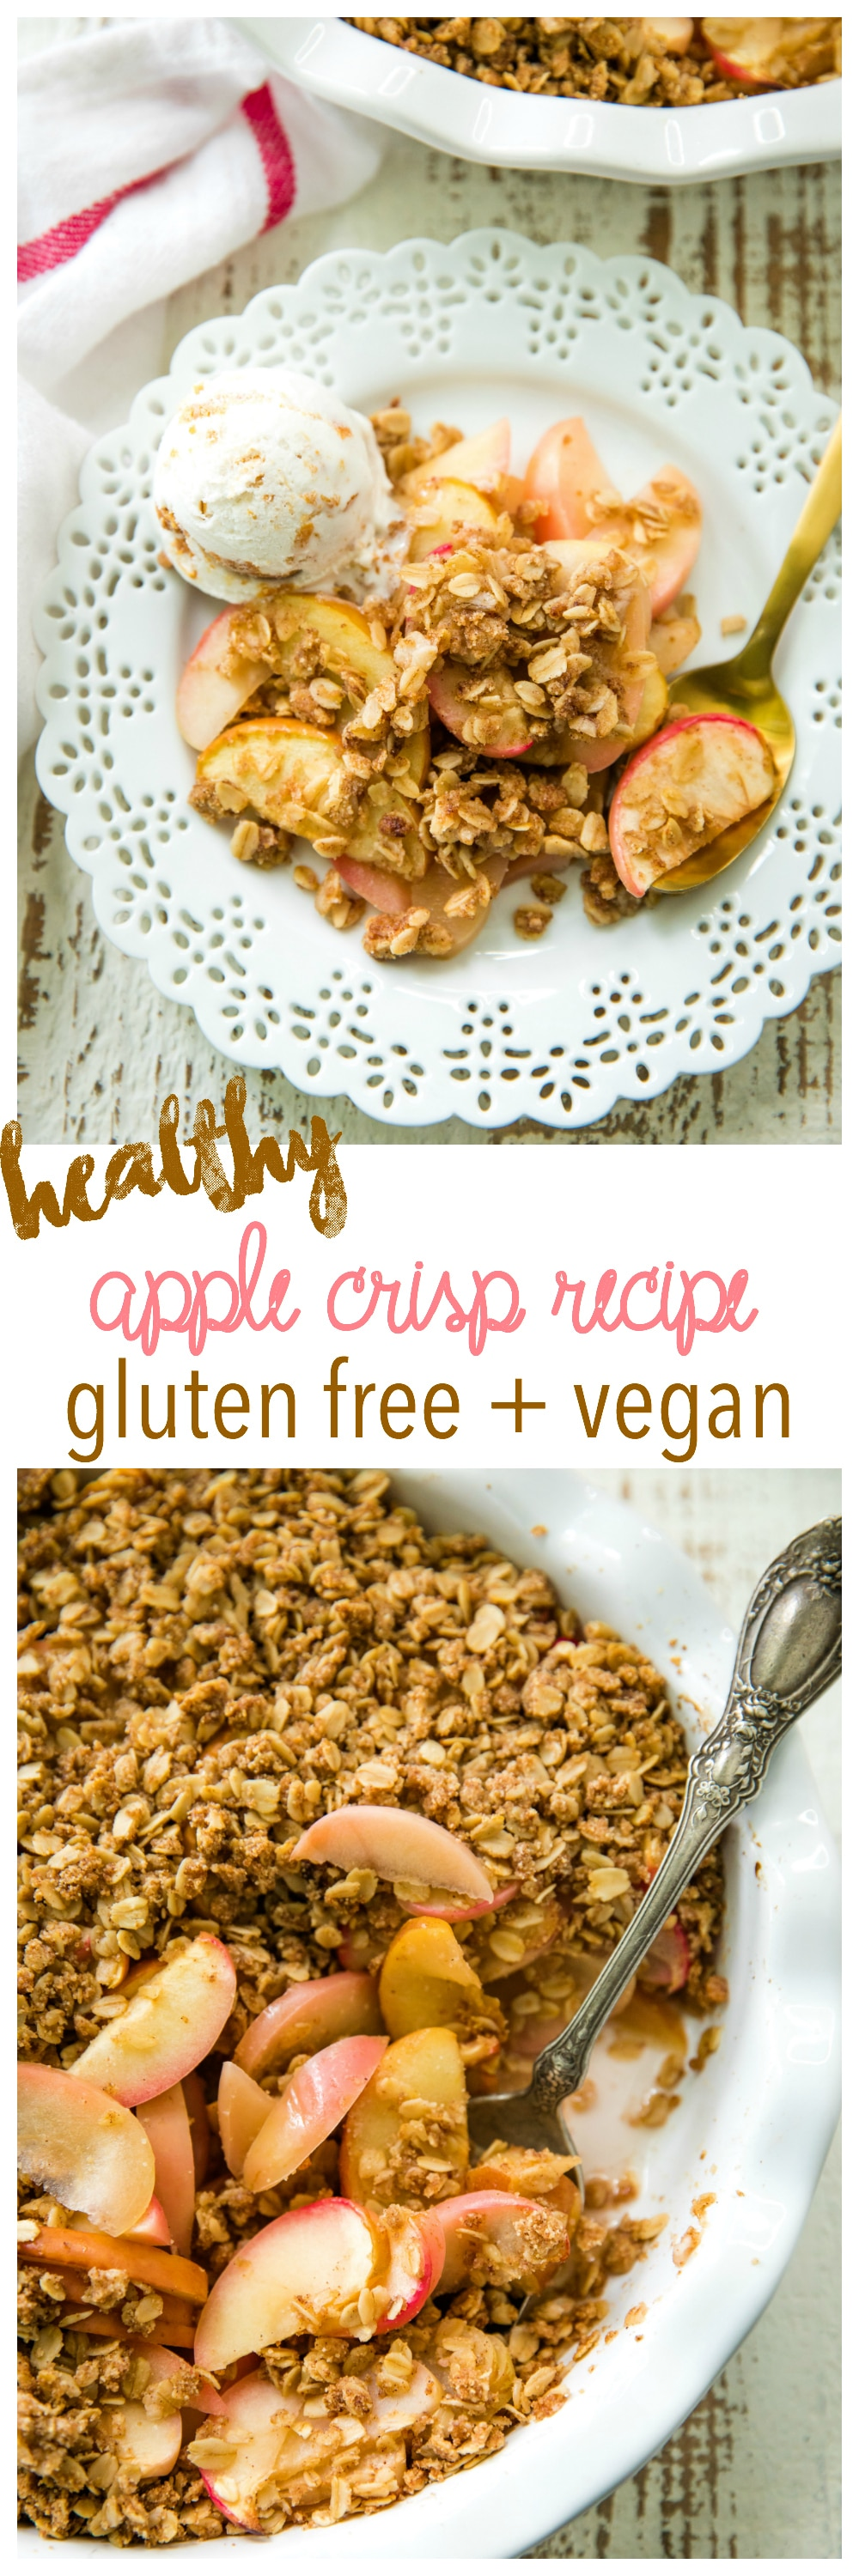 This gluten free, vegan, Healthy Apple Crisp Recipeis made with such nutritious ingredients you could totally eat it for breakfast, but it's also scrumptious enough to serve for dessert.